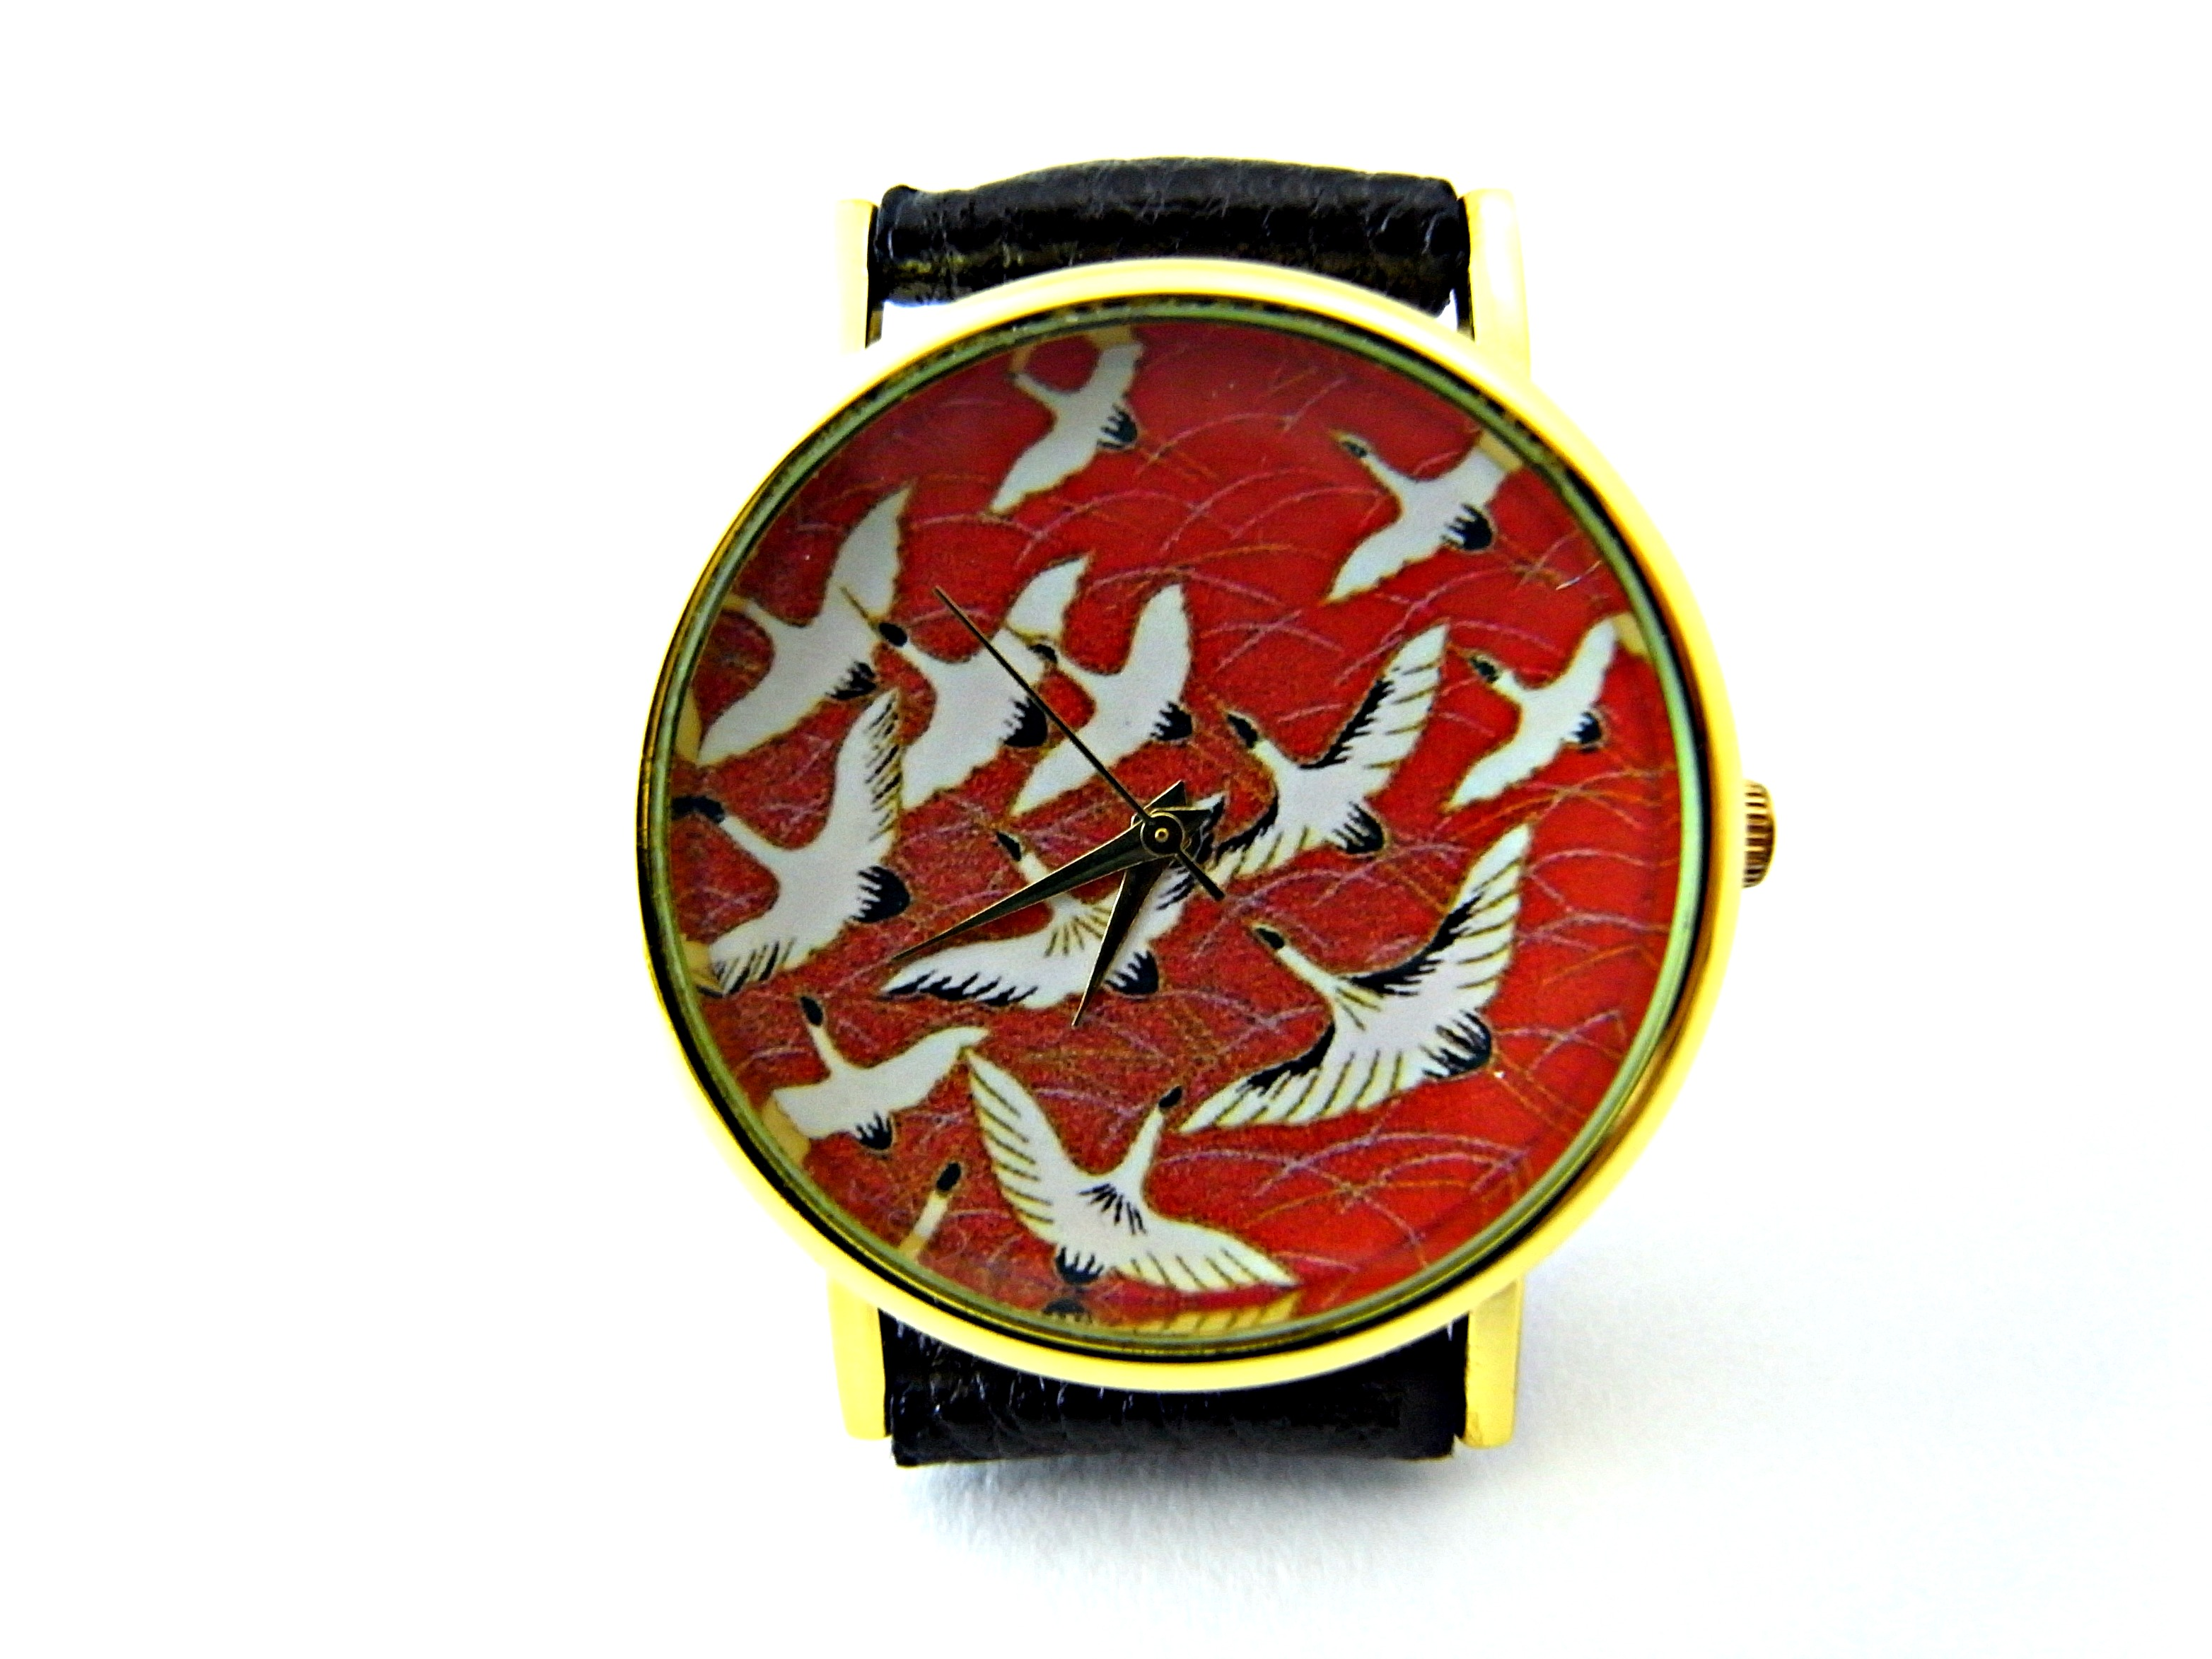 surveyor back watches small orient leather the business red in